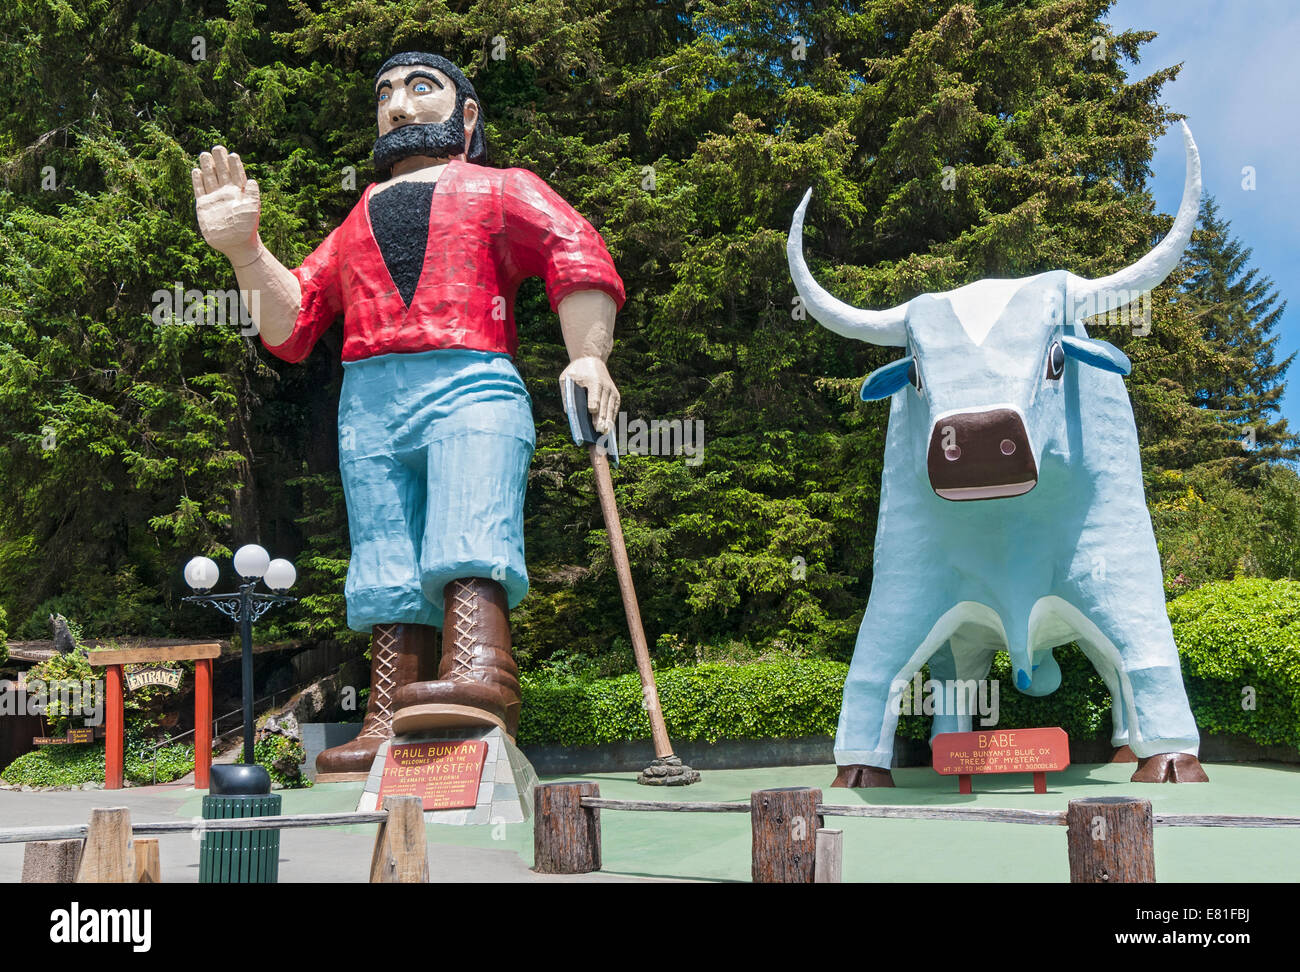 California, Klamath, Trees of Mystery, sculpture of Paul Bunyan and his blue ox 'Babe' - Stock Image